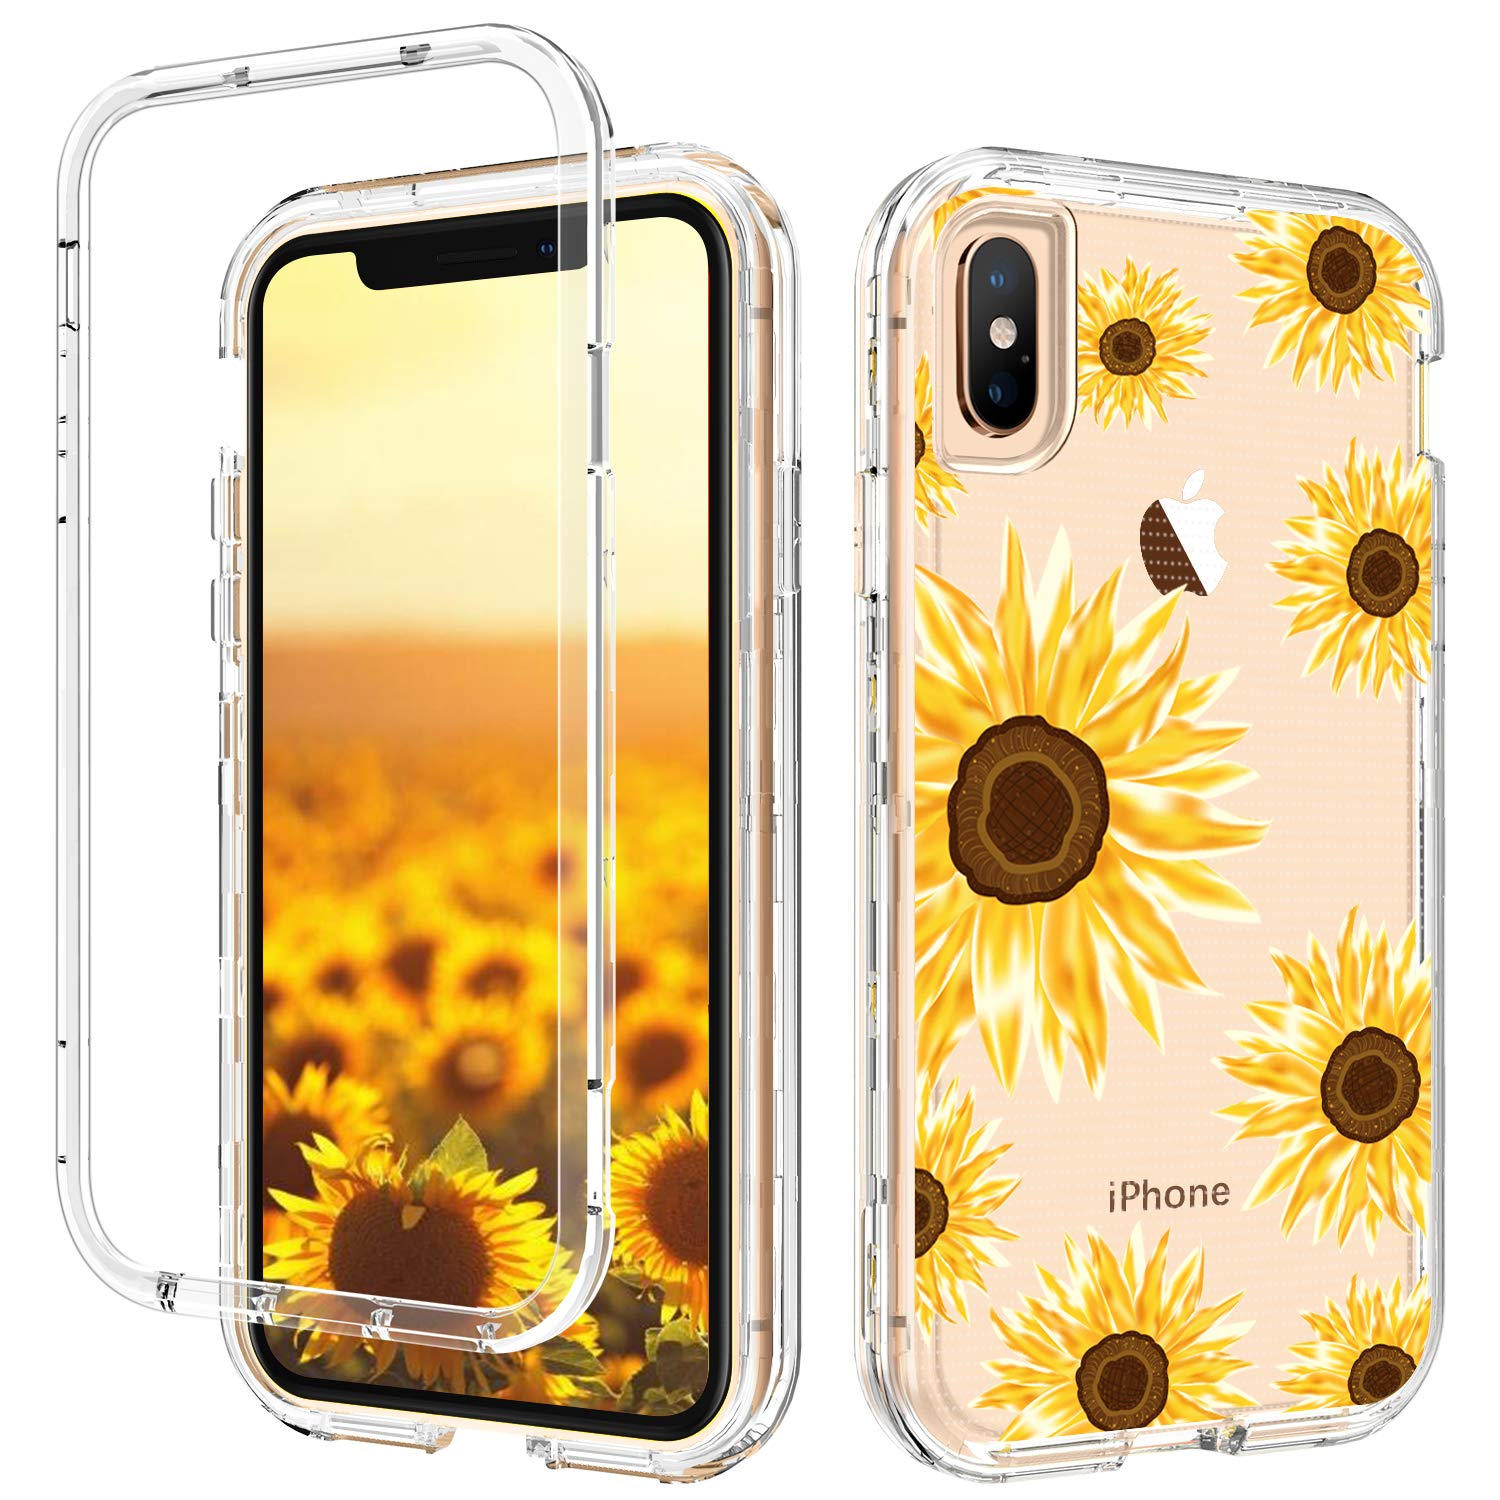 GUAGUA iPhone Xs Max Case Sunflower Clear Floral Flowers for Girls Women 3 in 1 Hybrid Hard Plastic Soft Rubber Cover Shockproof Protective Phone Cases for iPhone Xs Max Transparent Yellow